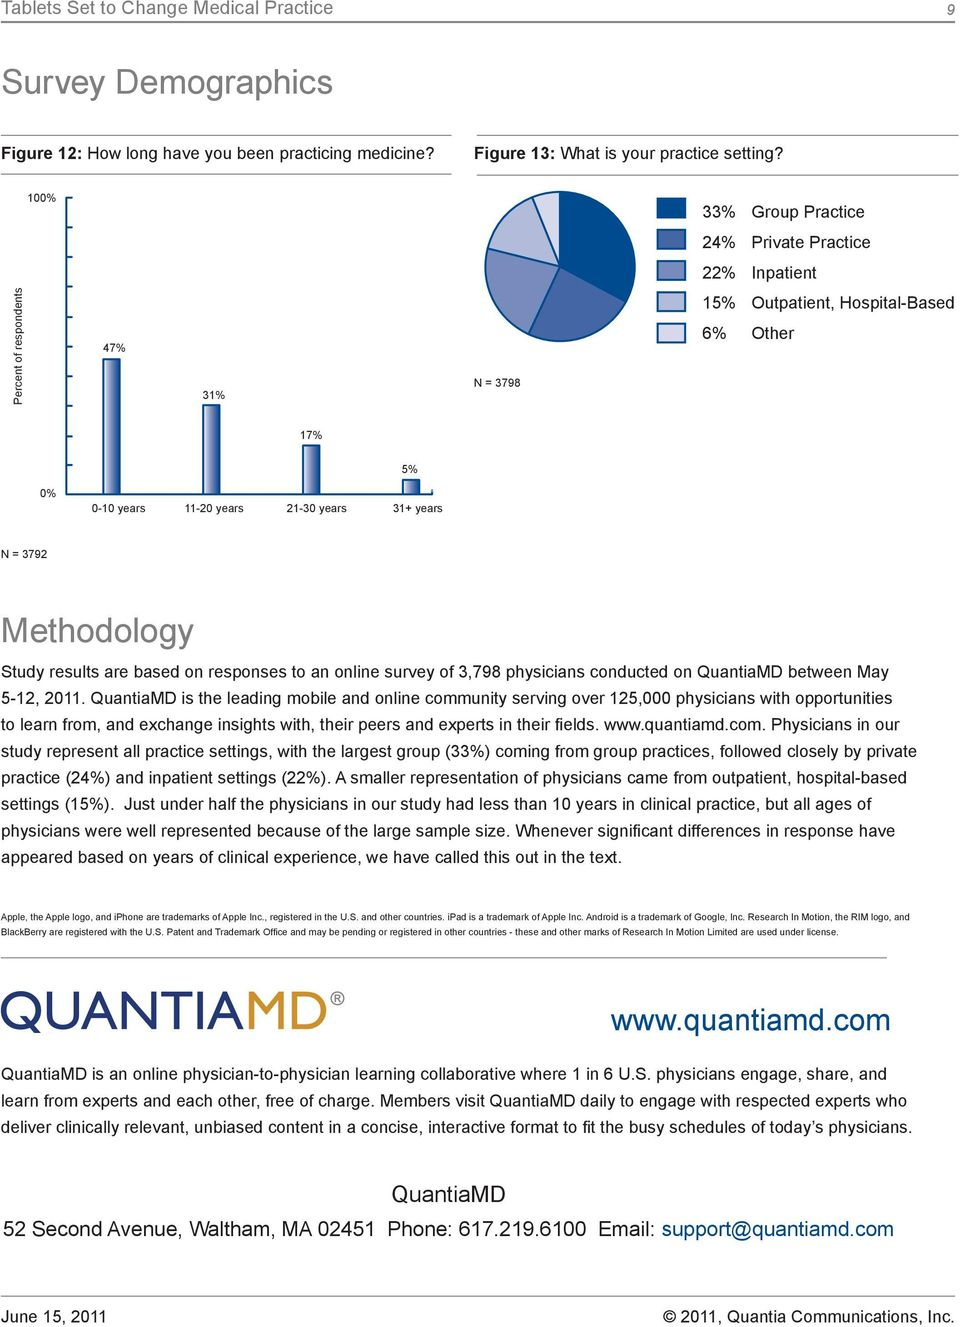 based on responses to an online survey of 3,798 physicians conducted on QuantiaMD between May 5-12, 2011.